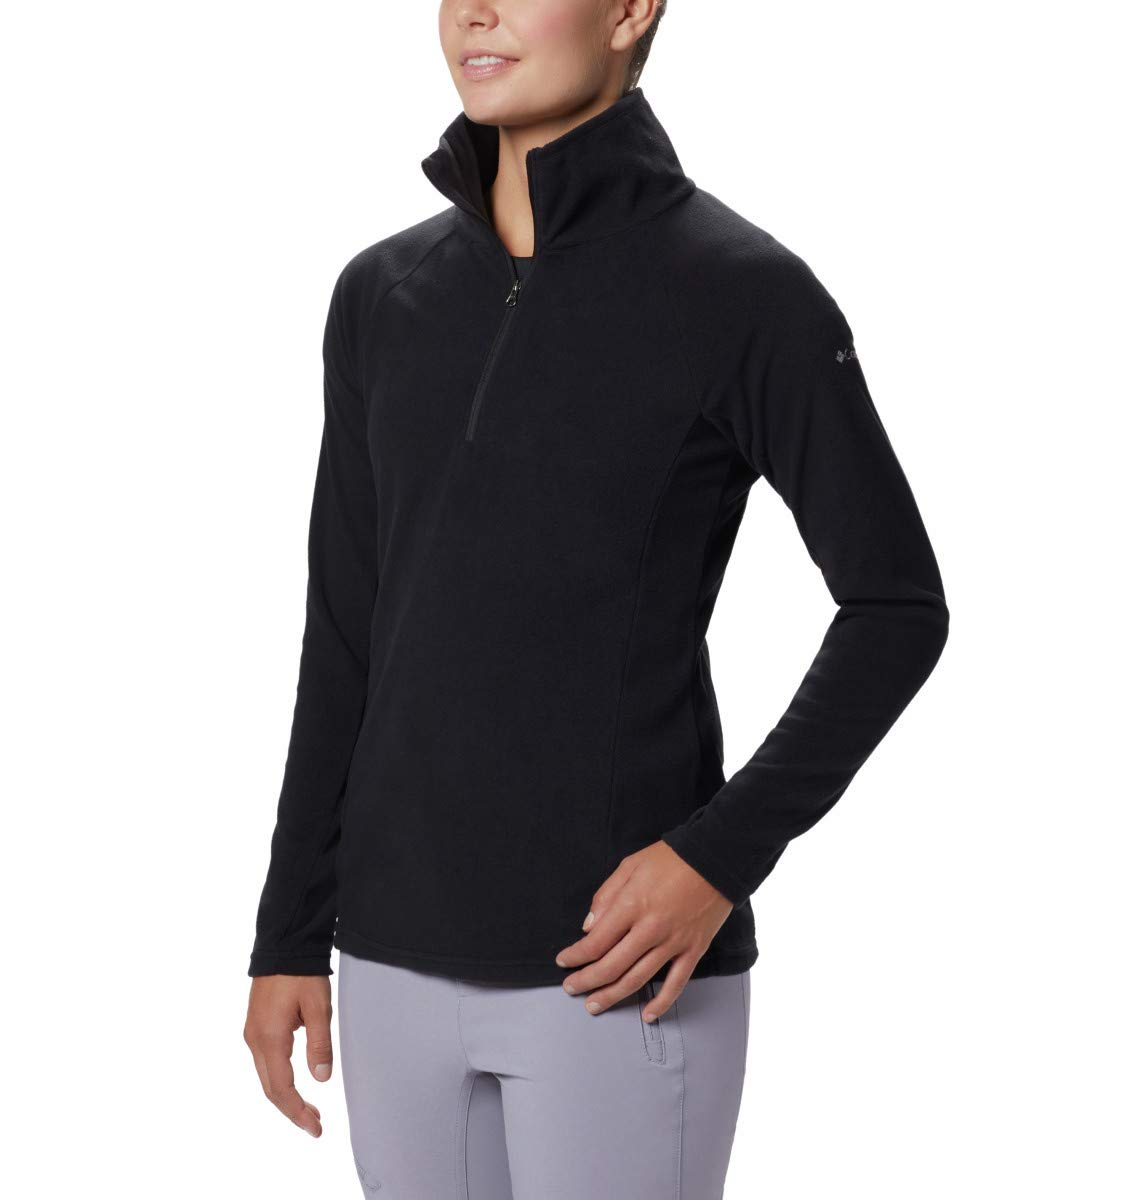 Columbia Women's Glacial IV Half Zip, Soft Fleece with Classic Fit, Black, X-Small by Columbia